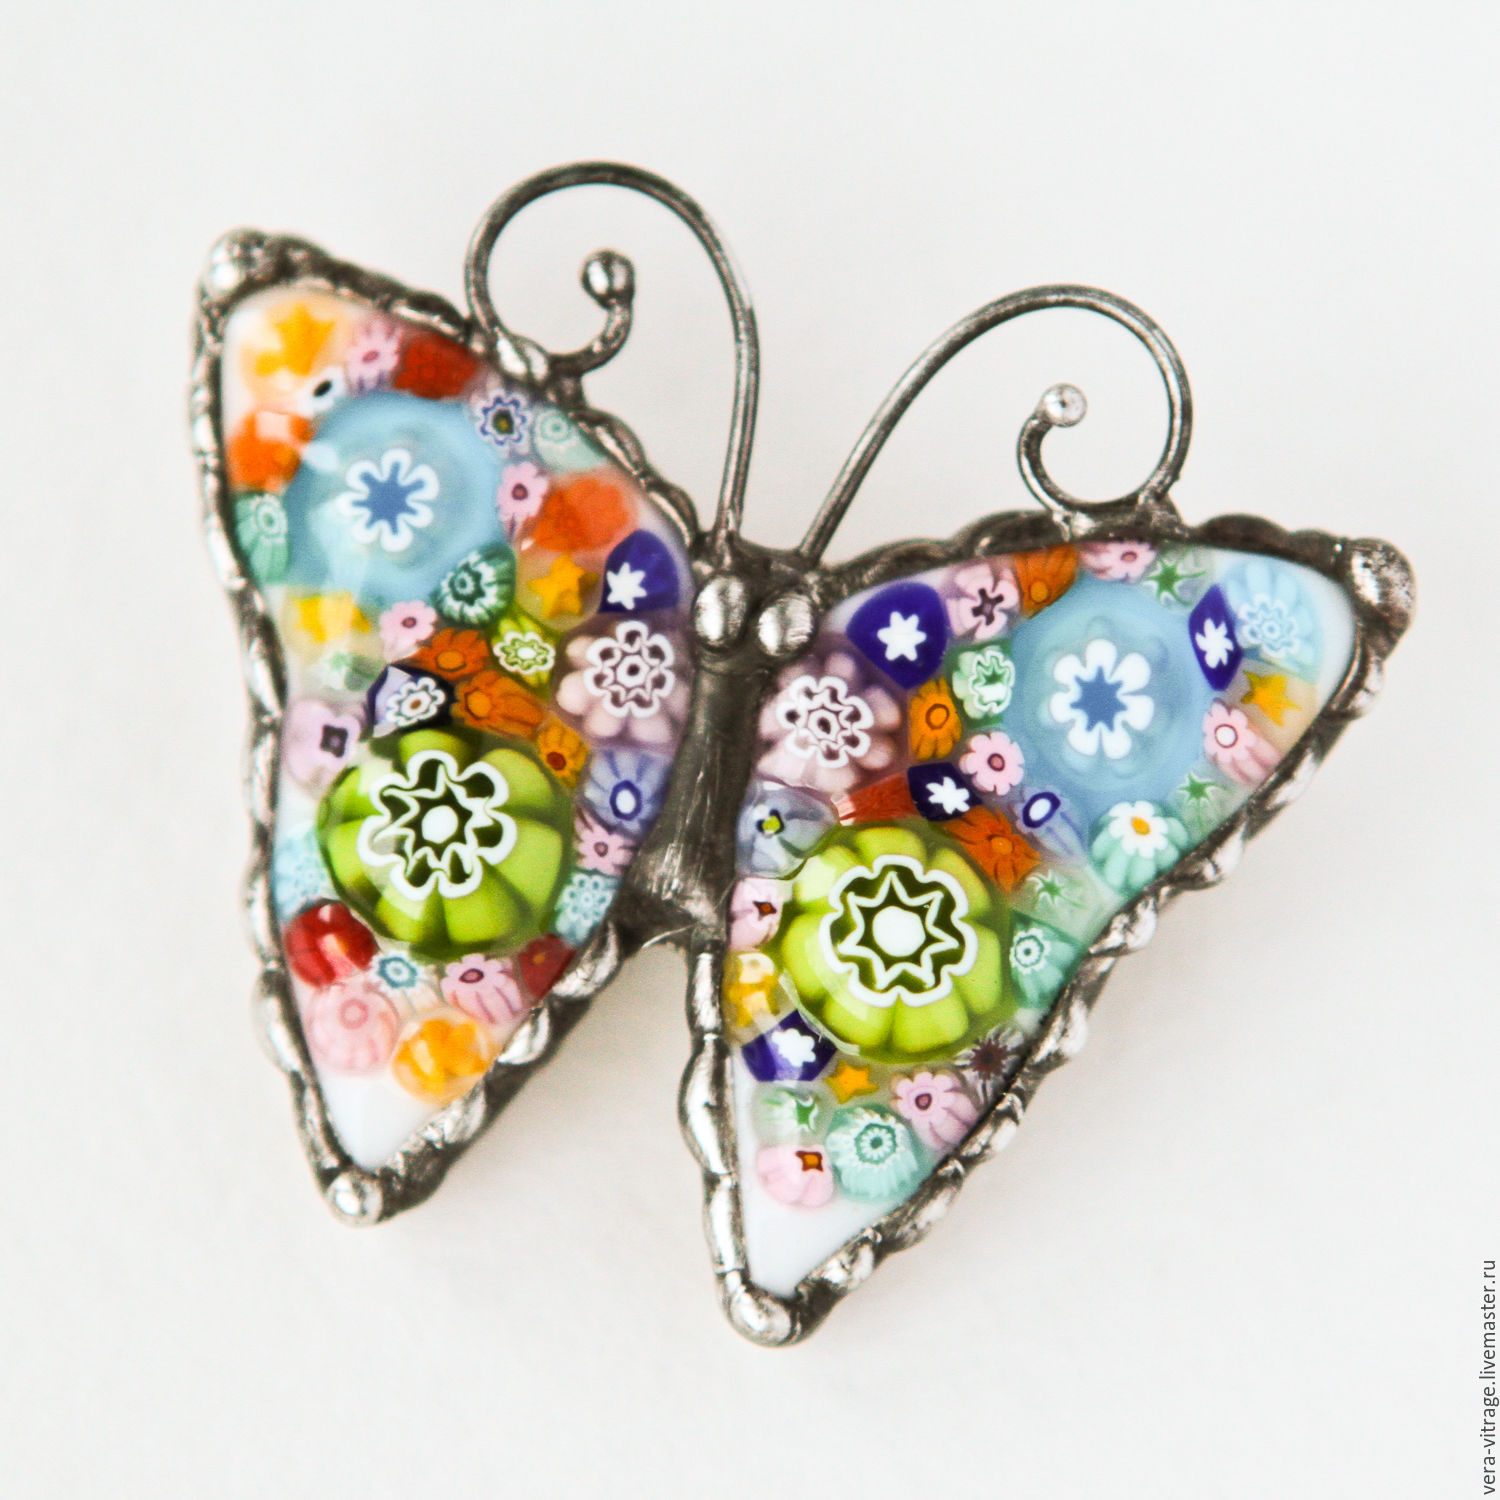 products glass the second collection pink daum fifth hand brooch thumbnail